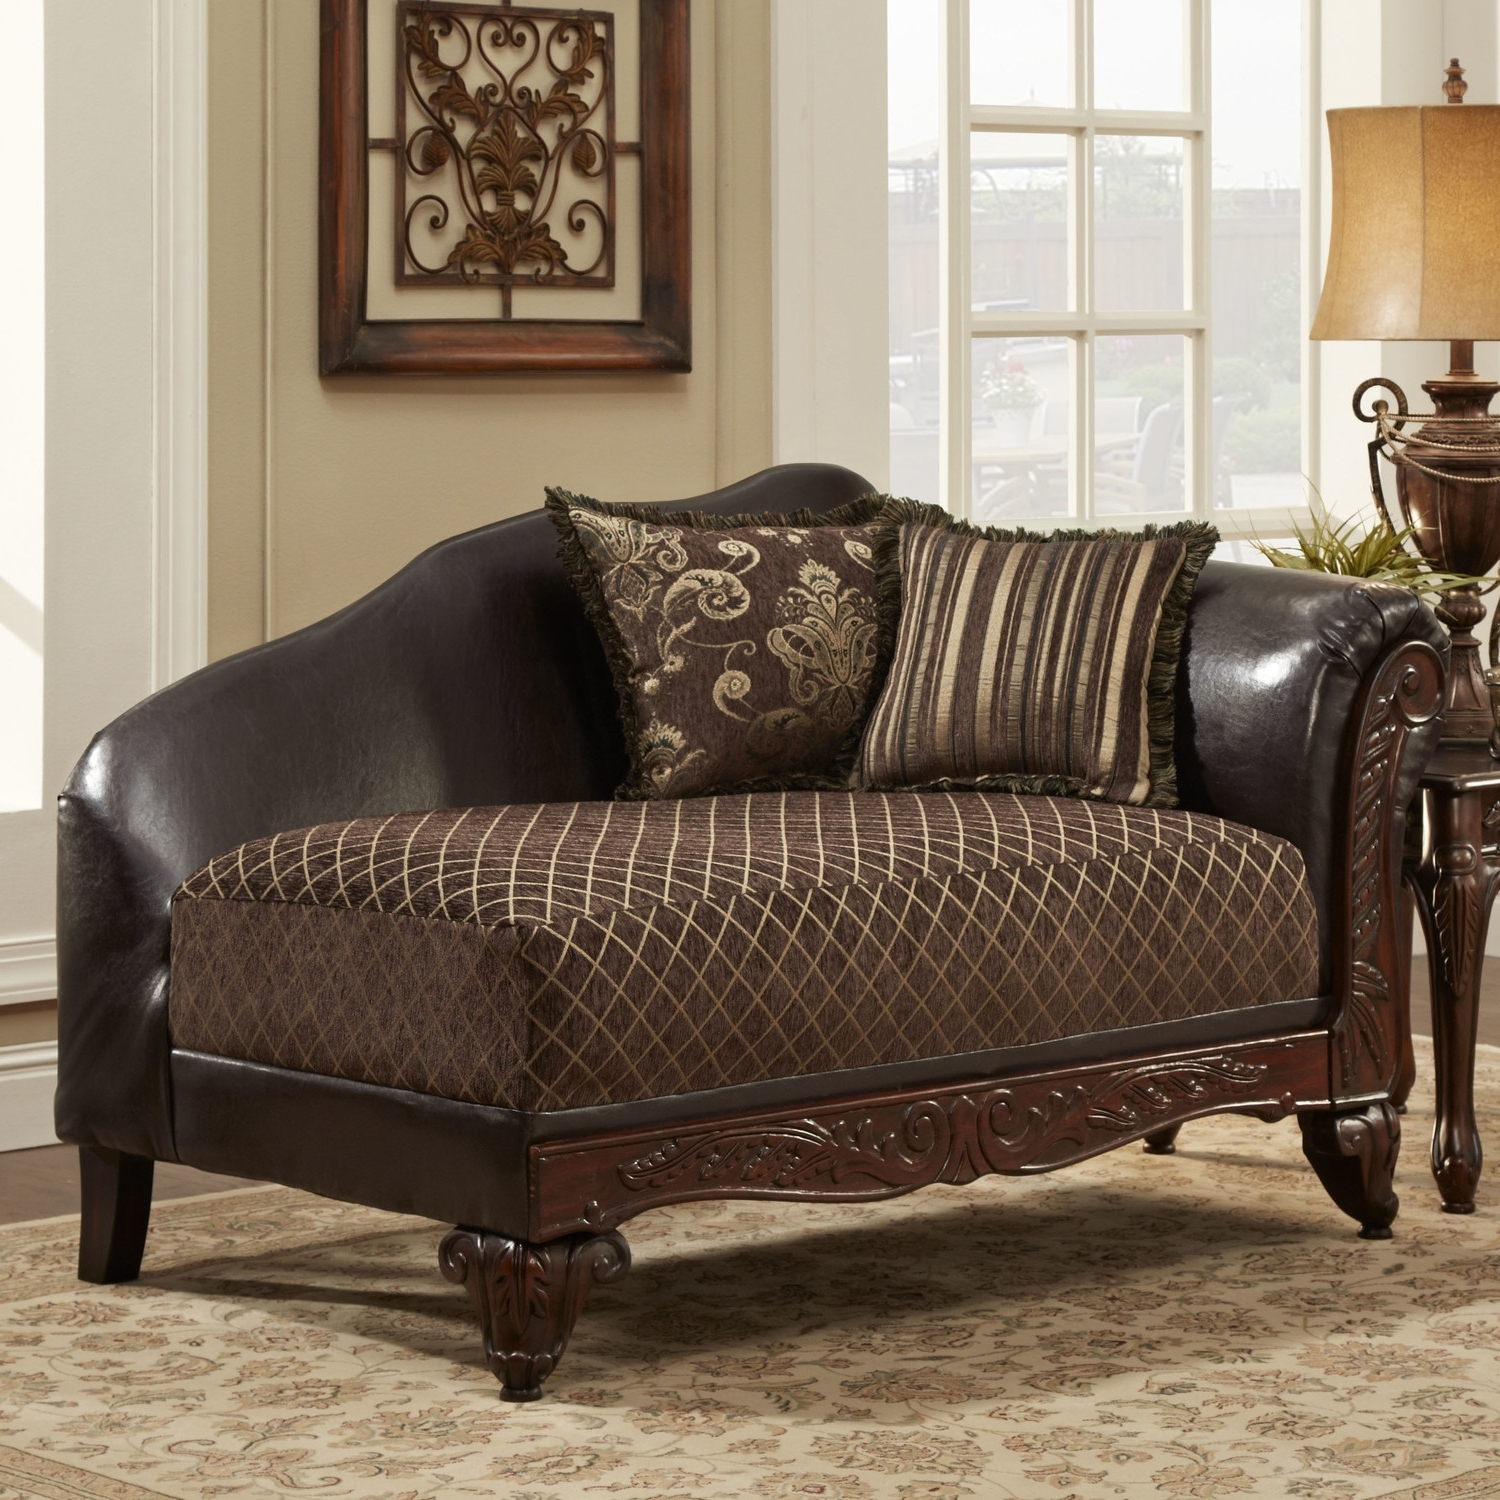 Wonderful Brown Leather Chaise Lounge With Traditional Chaise With Favorite Leather Chaise Lounge Sofas (View 15 of 15)